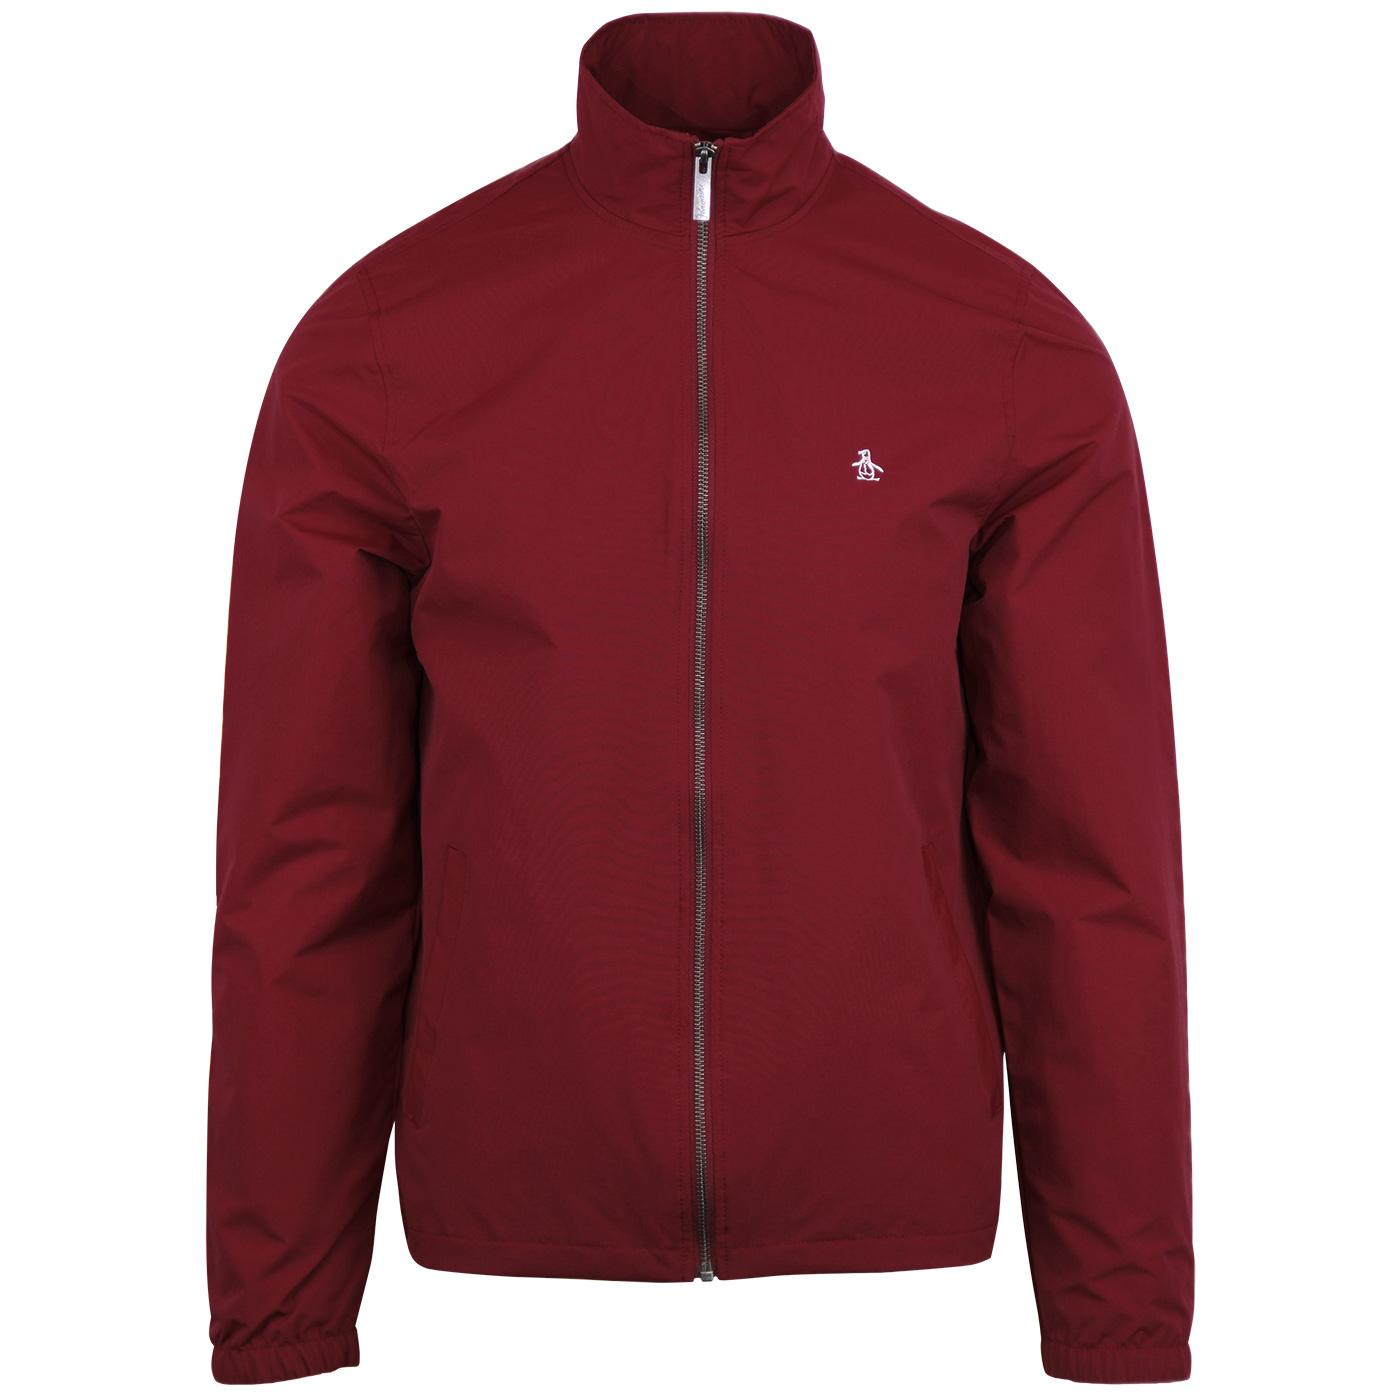 ORIGINAL PENGUIN Retro Windcheater Jacket - Red